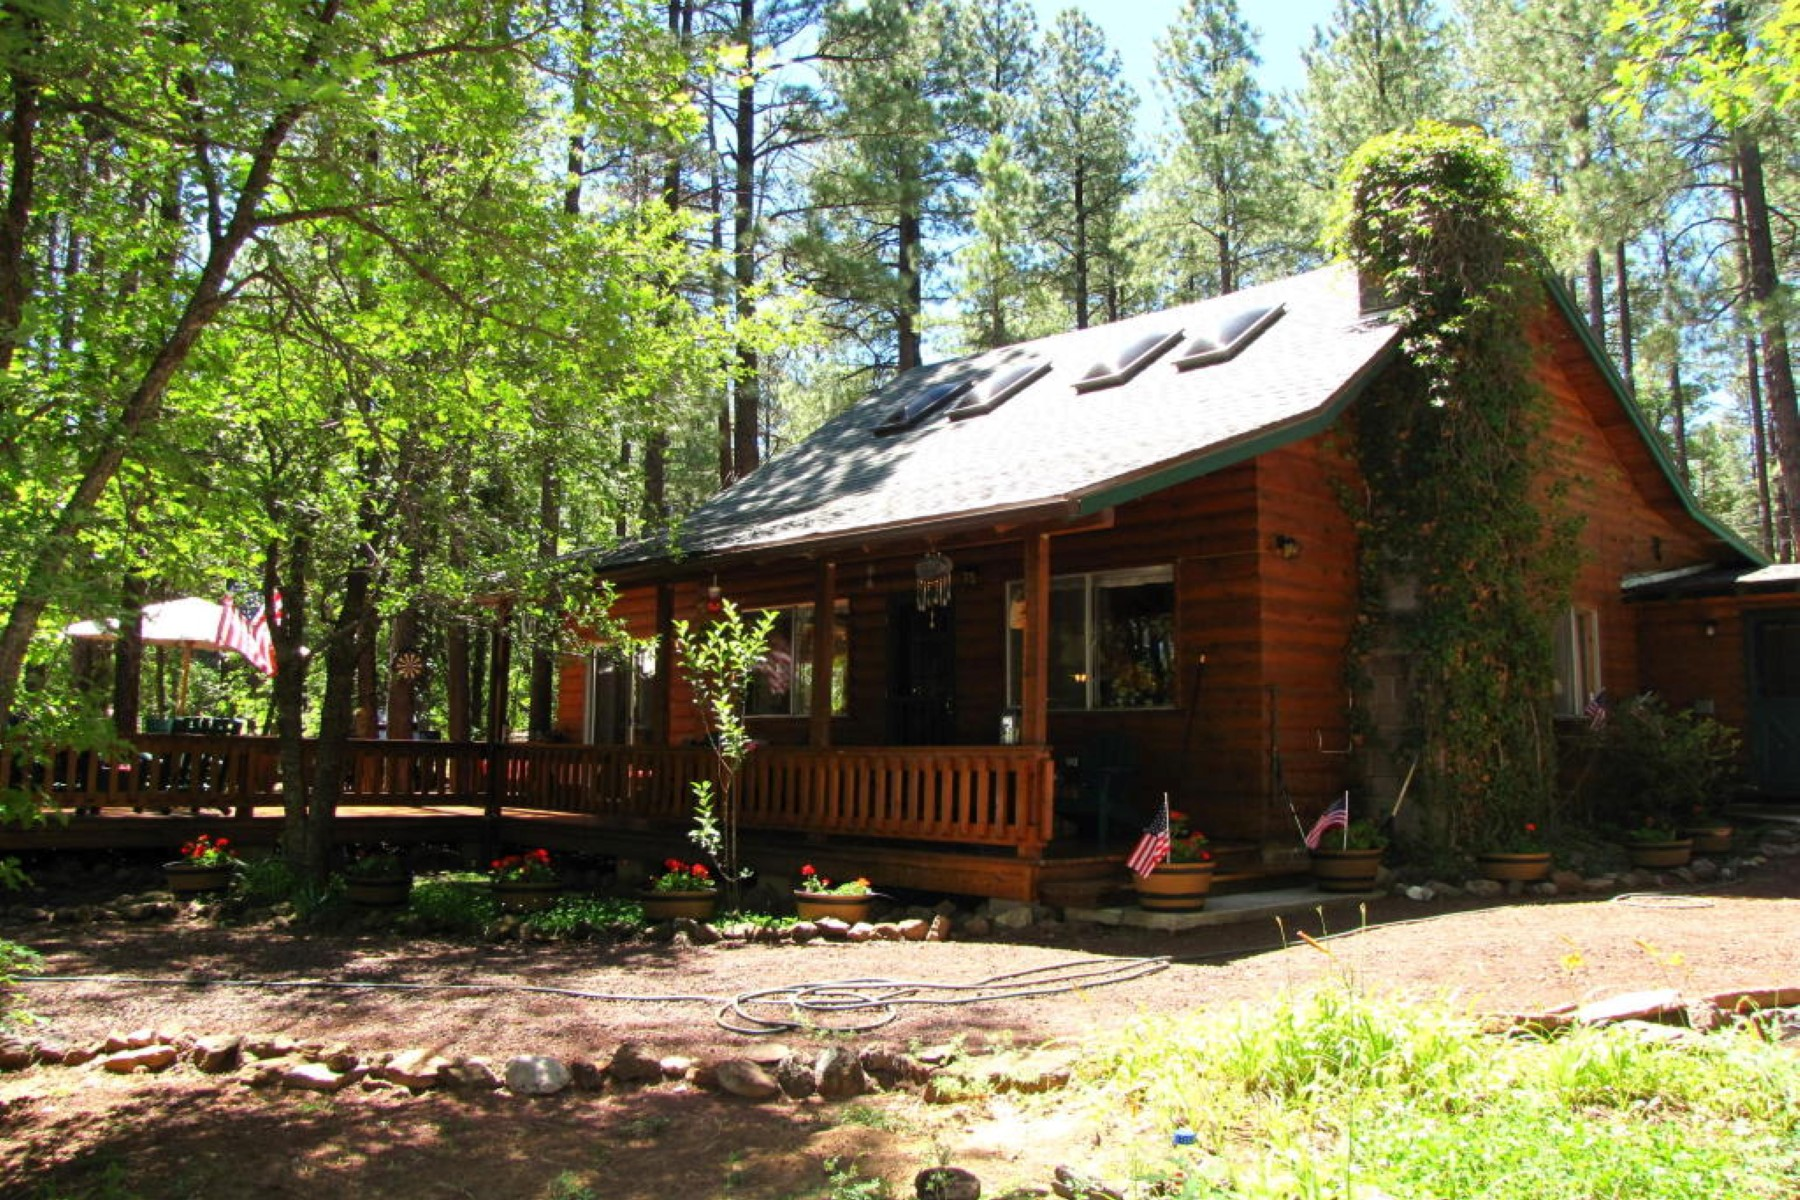 Single Family Home for Sale at Charming and updated cabin in White Mountain Summer Homes 2137 Jackrabbit Dr Pinetop, Arizona, 85935 United States